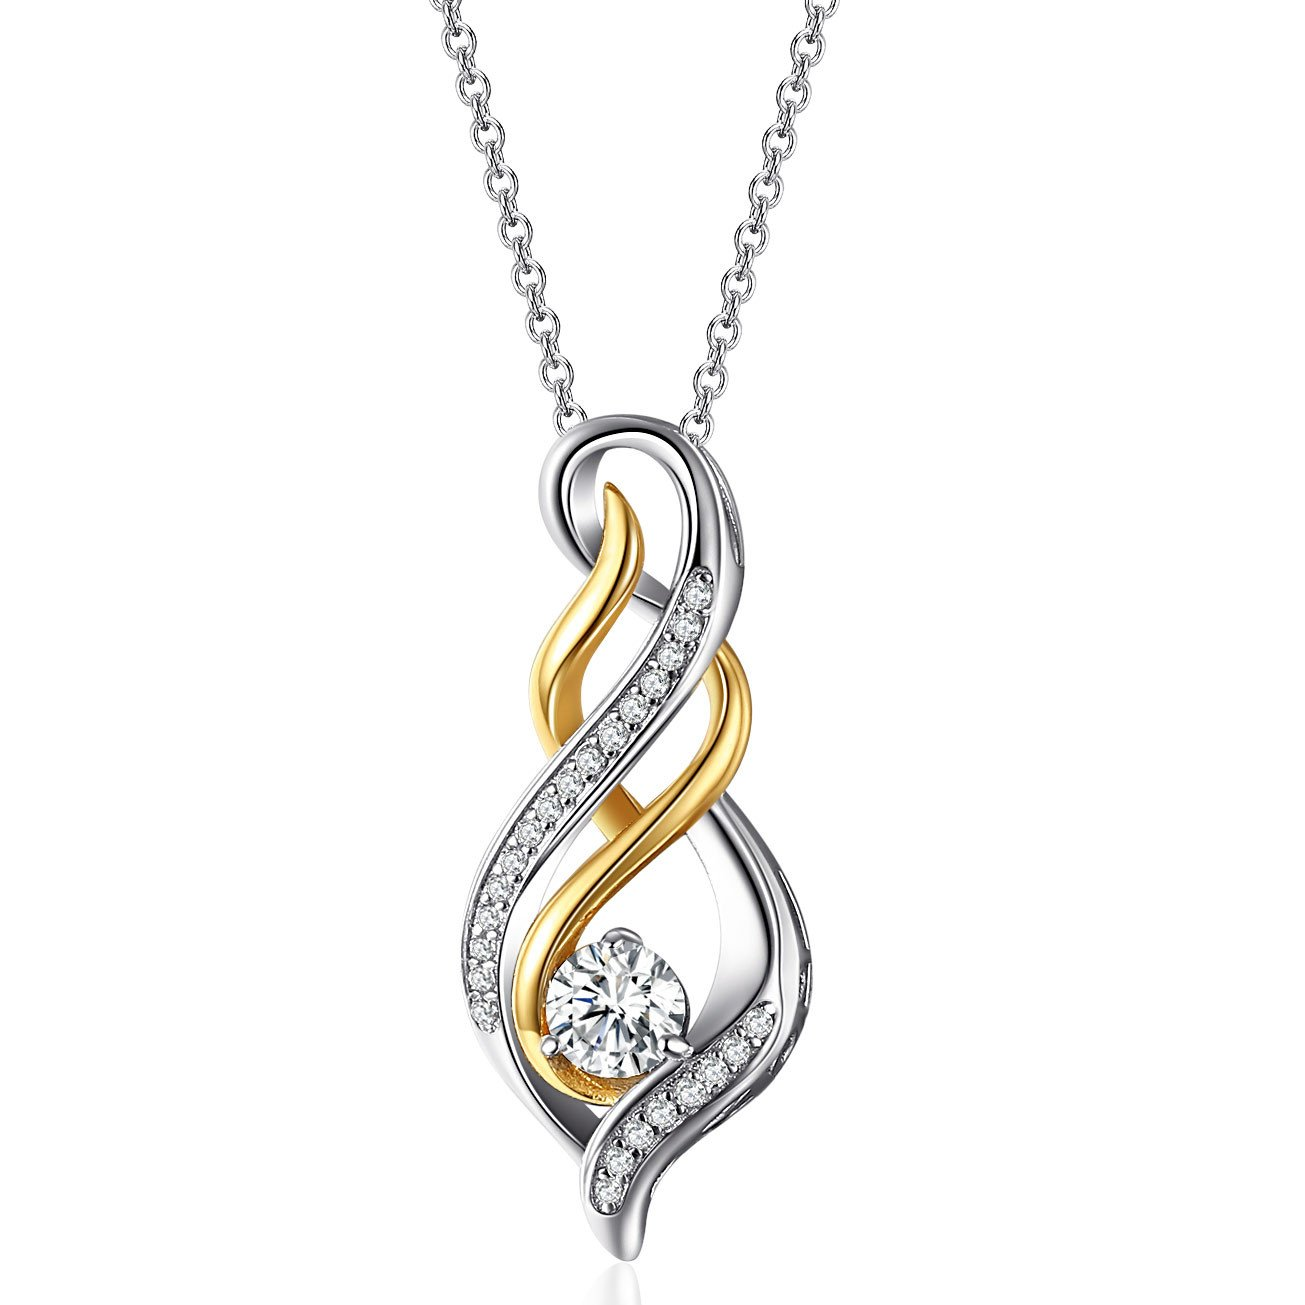 Caperci Sterling Silver Two-Tone Diamond Accent Twist MOM Flame Pendant Necklace for Women, Birthday Gifts for Mom